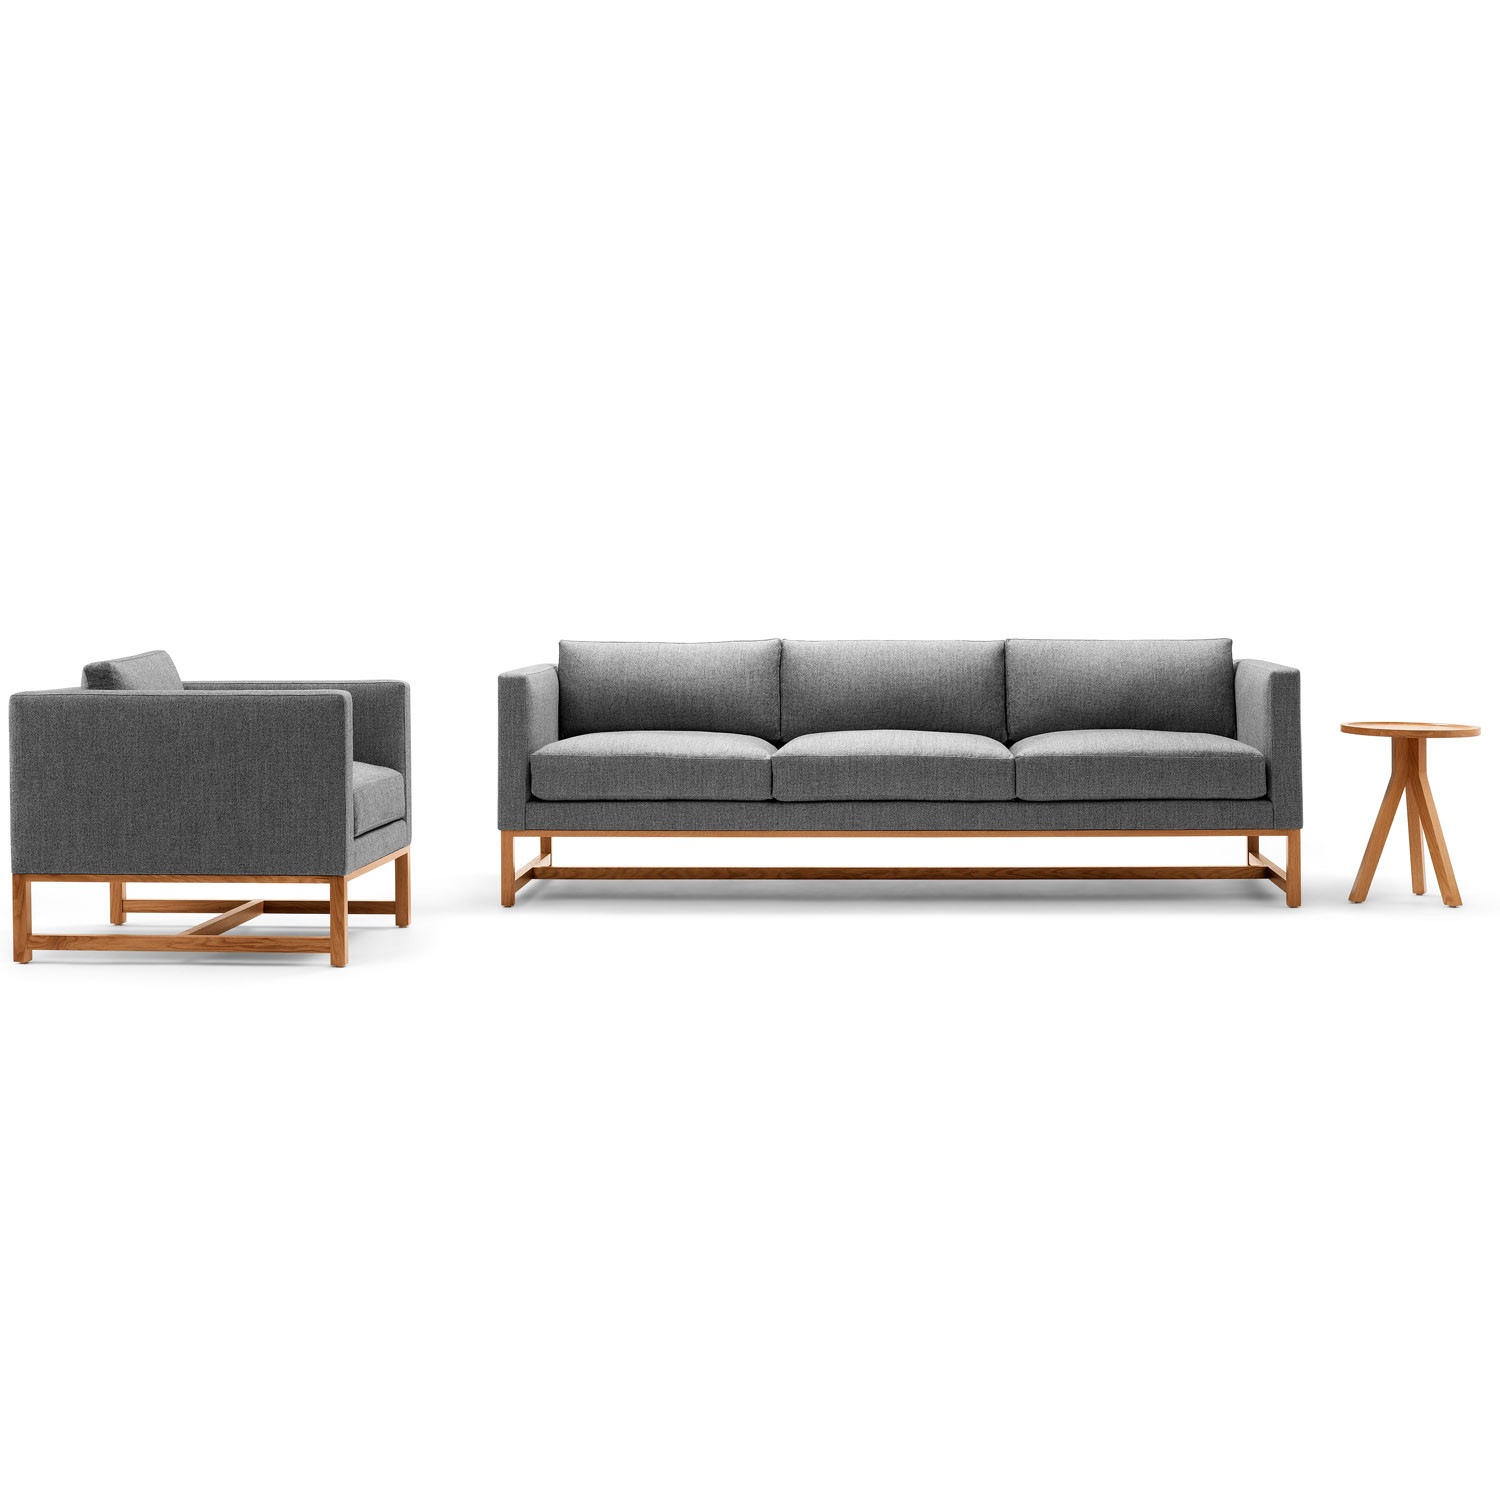 Orten Sofa and Armchair